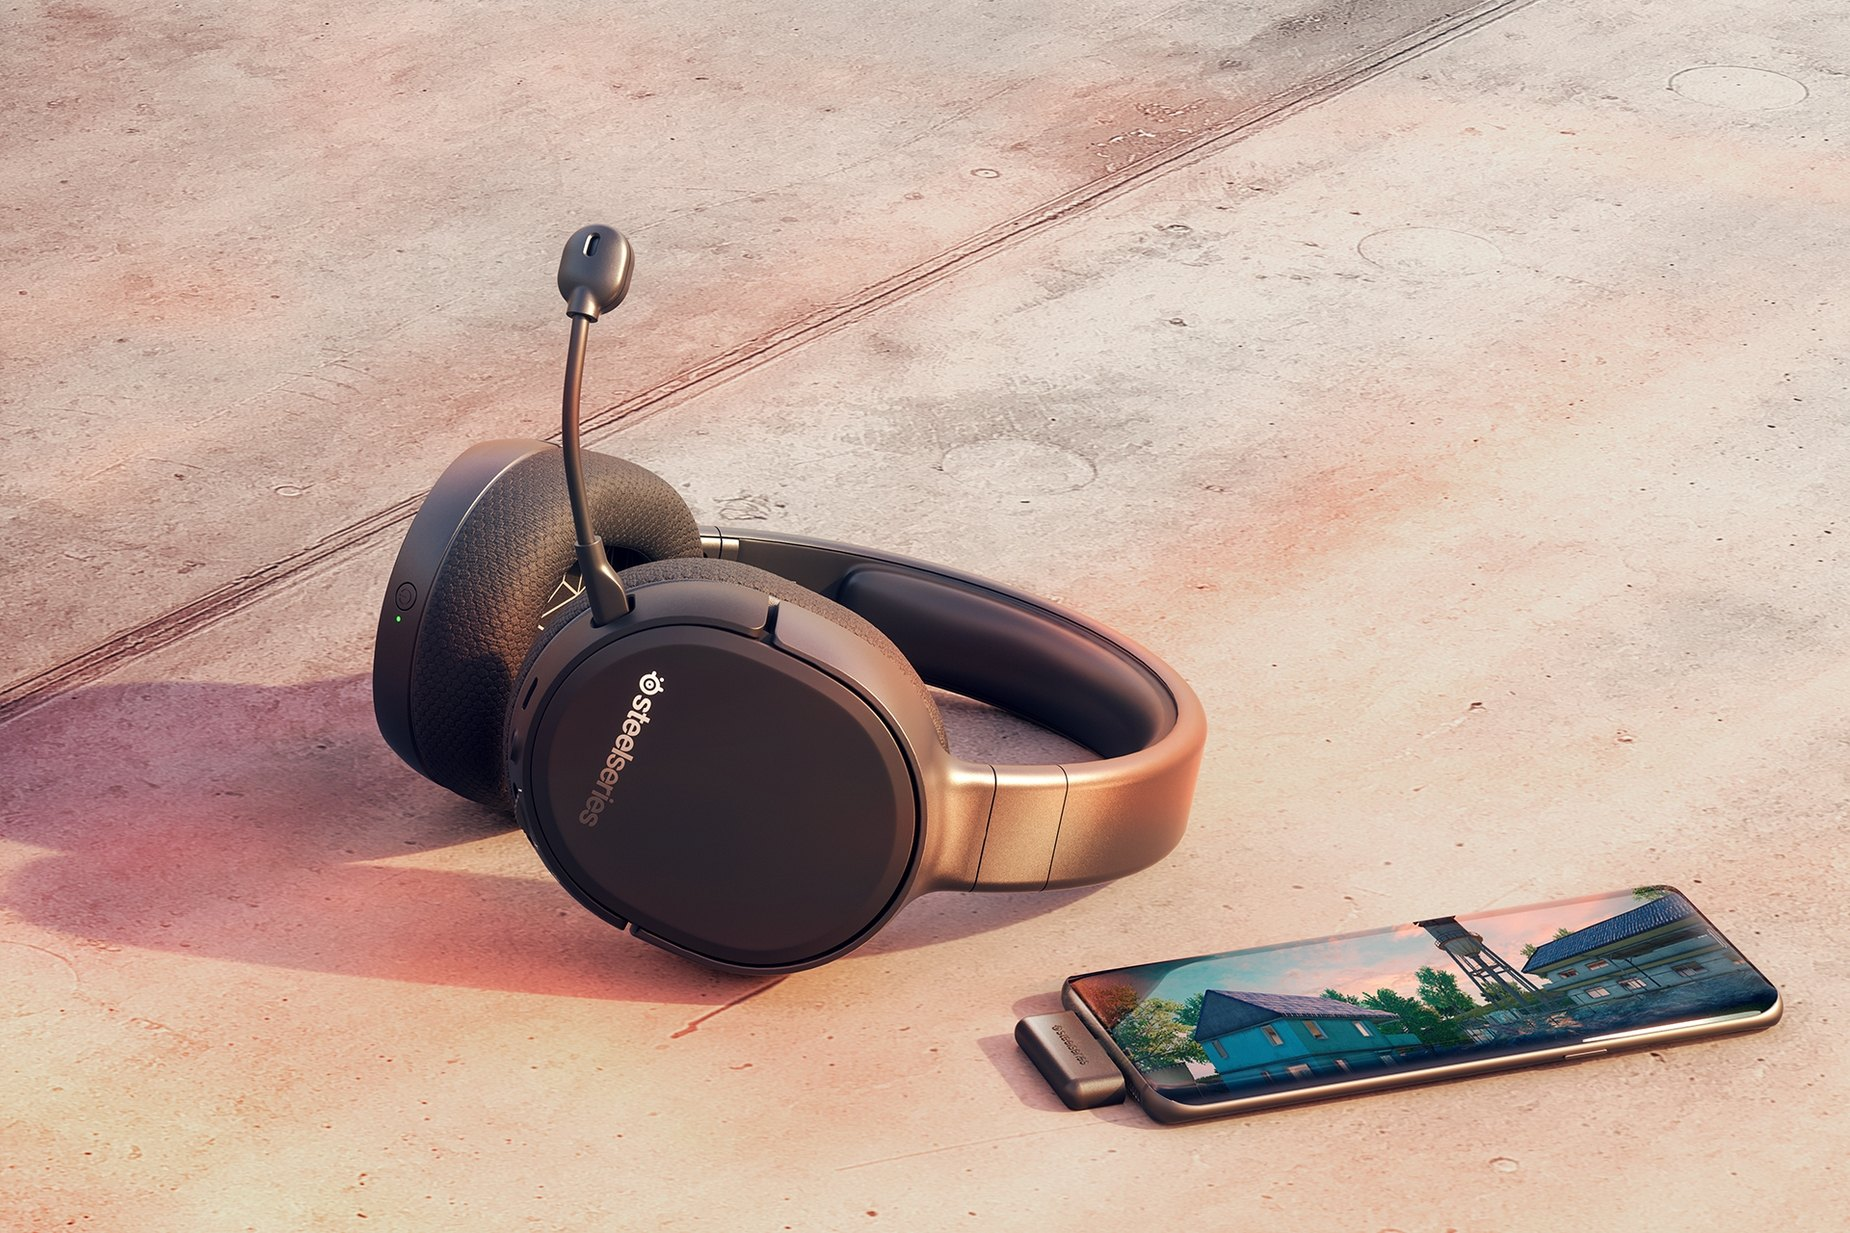 Arctis 1 Wireless gaming headset on surface next to a mobile device, connected via the wireless dongle